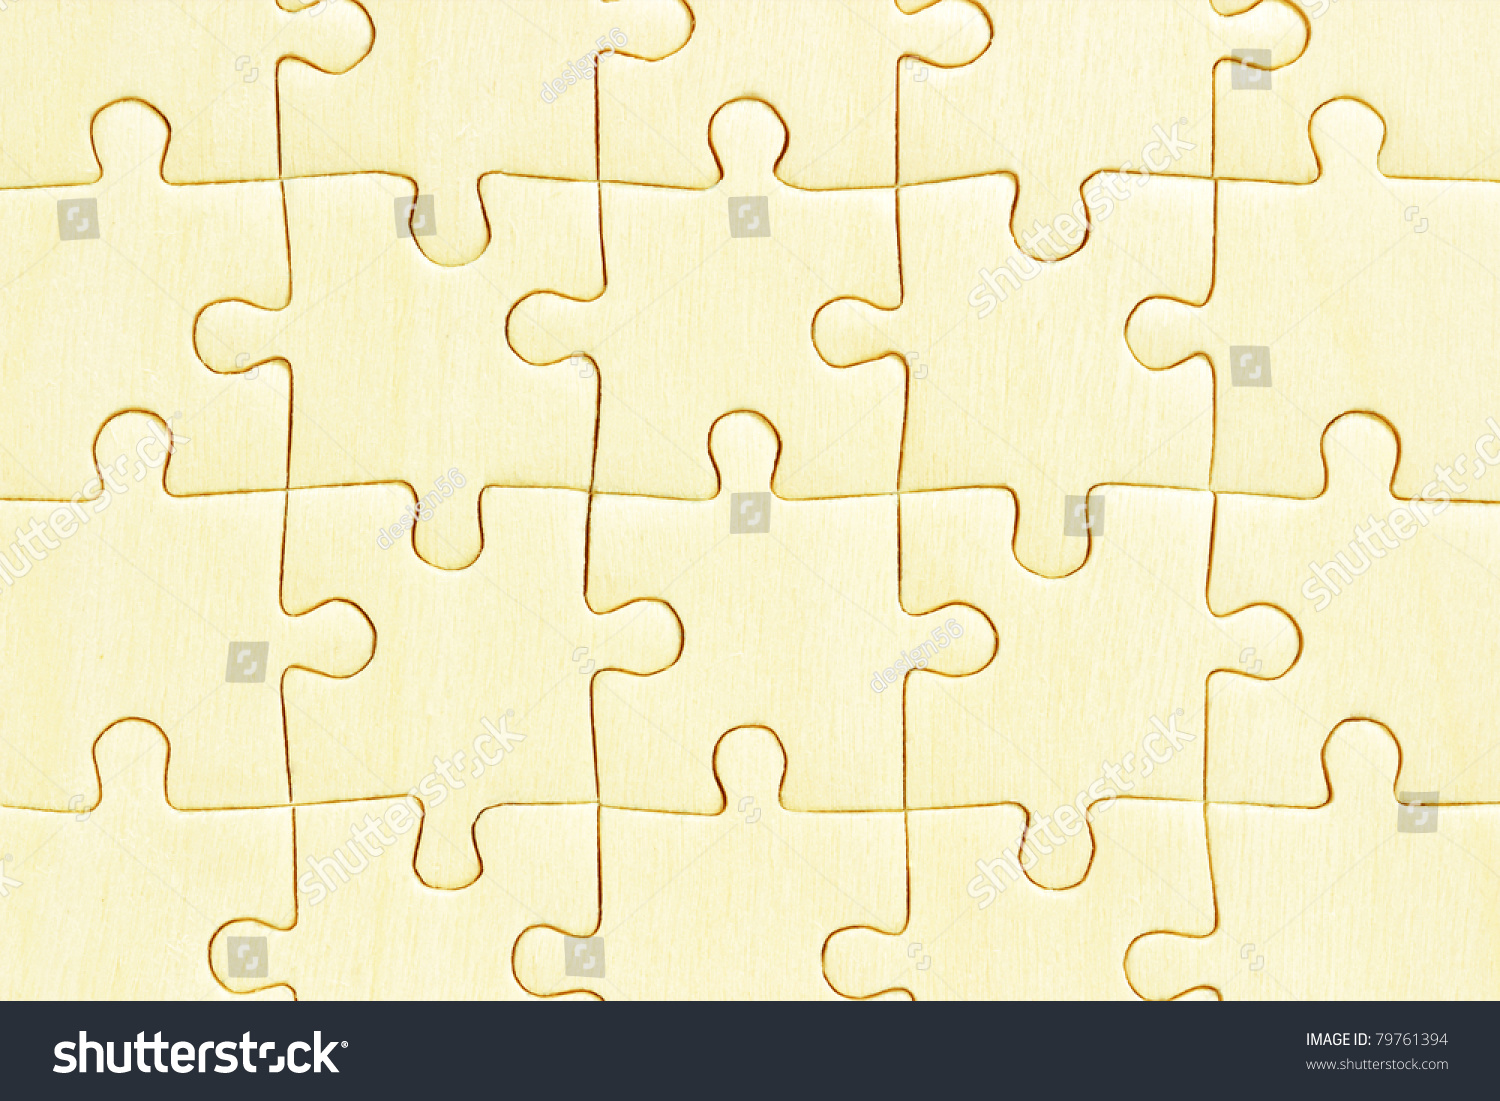 Nice 7 Little Words Puzzle Big Bible Crossword Puzzles Solid Bits And Pieces Puzzles Magic Puzzle Free Old Under Saarthal Puzzle 1 ColouredWorksheet Periodic Table Puzzles Close Wooden Jigsaw Puzzles Background Stock Photo 79761394 ..